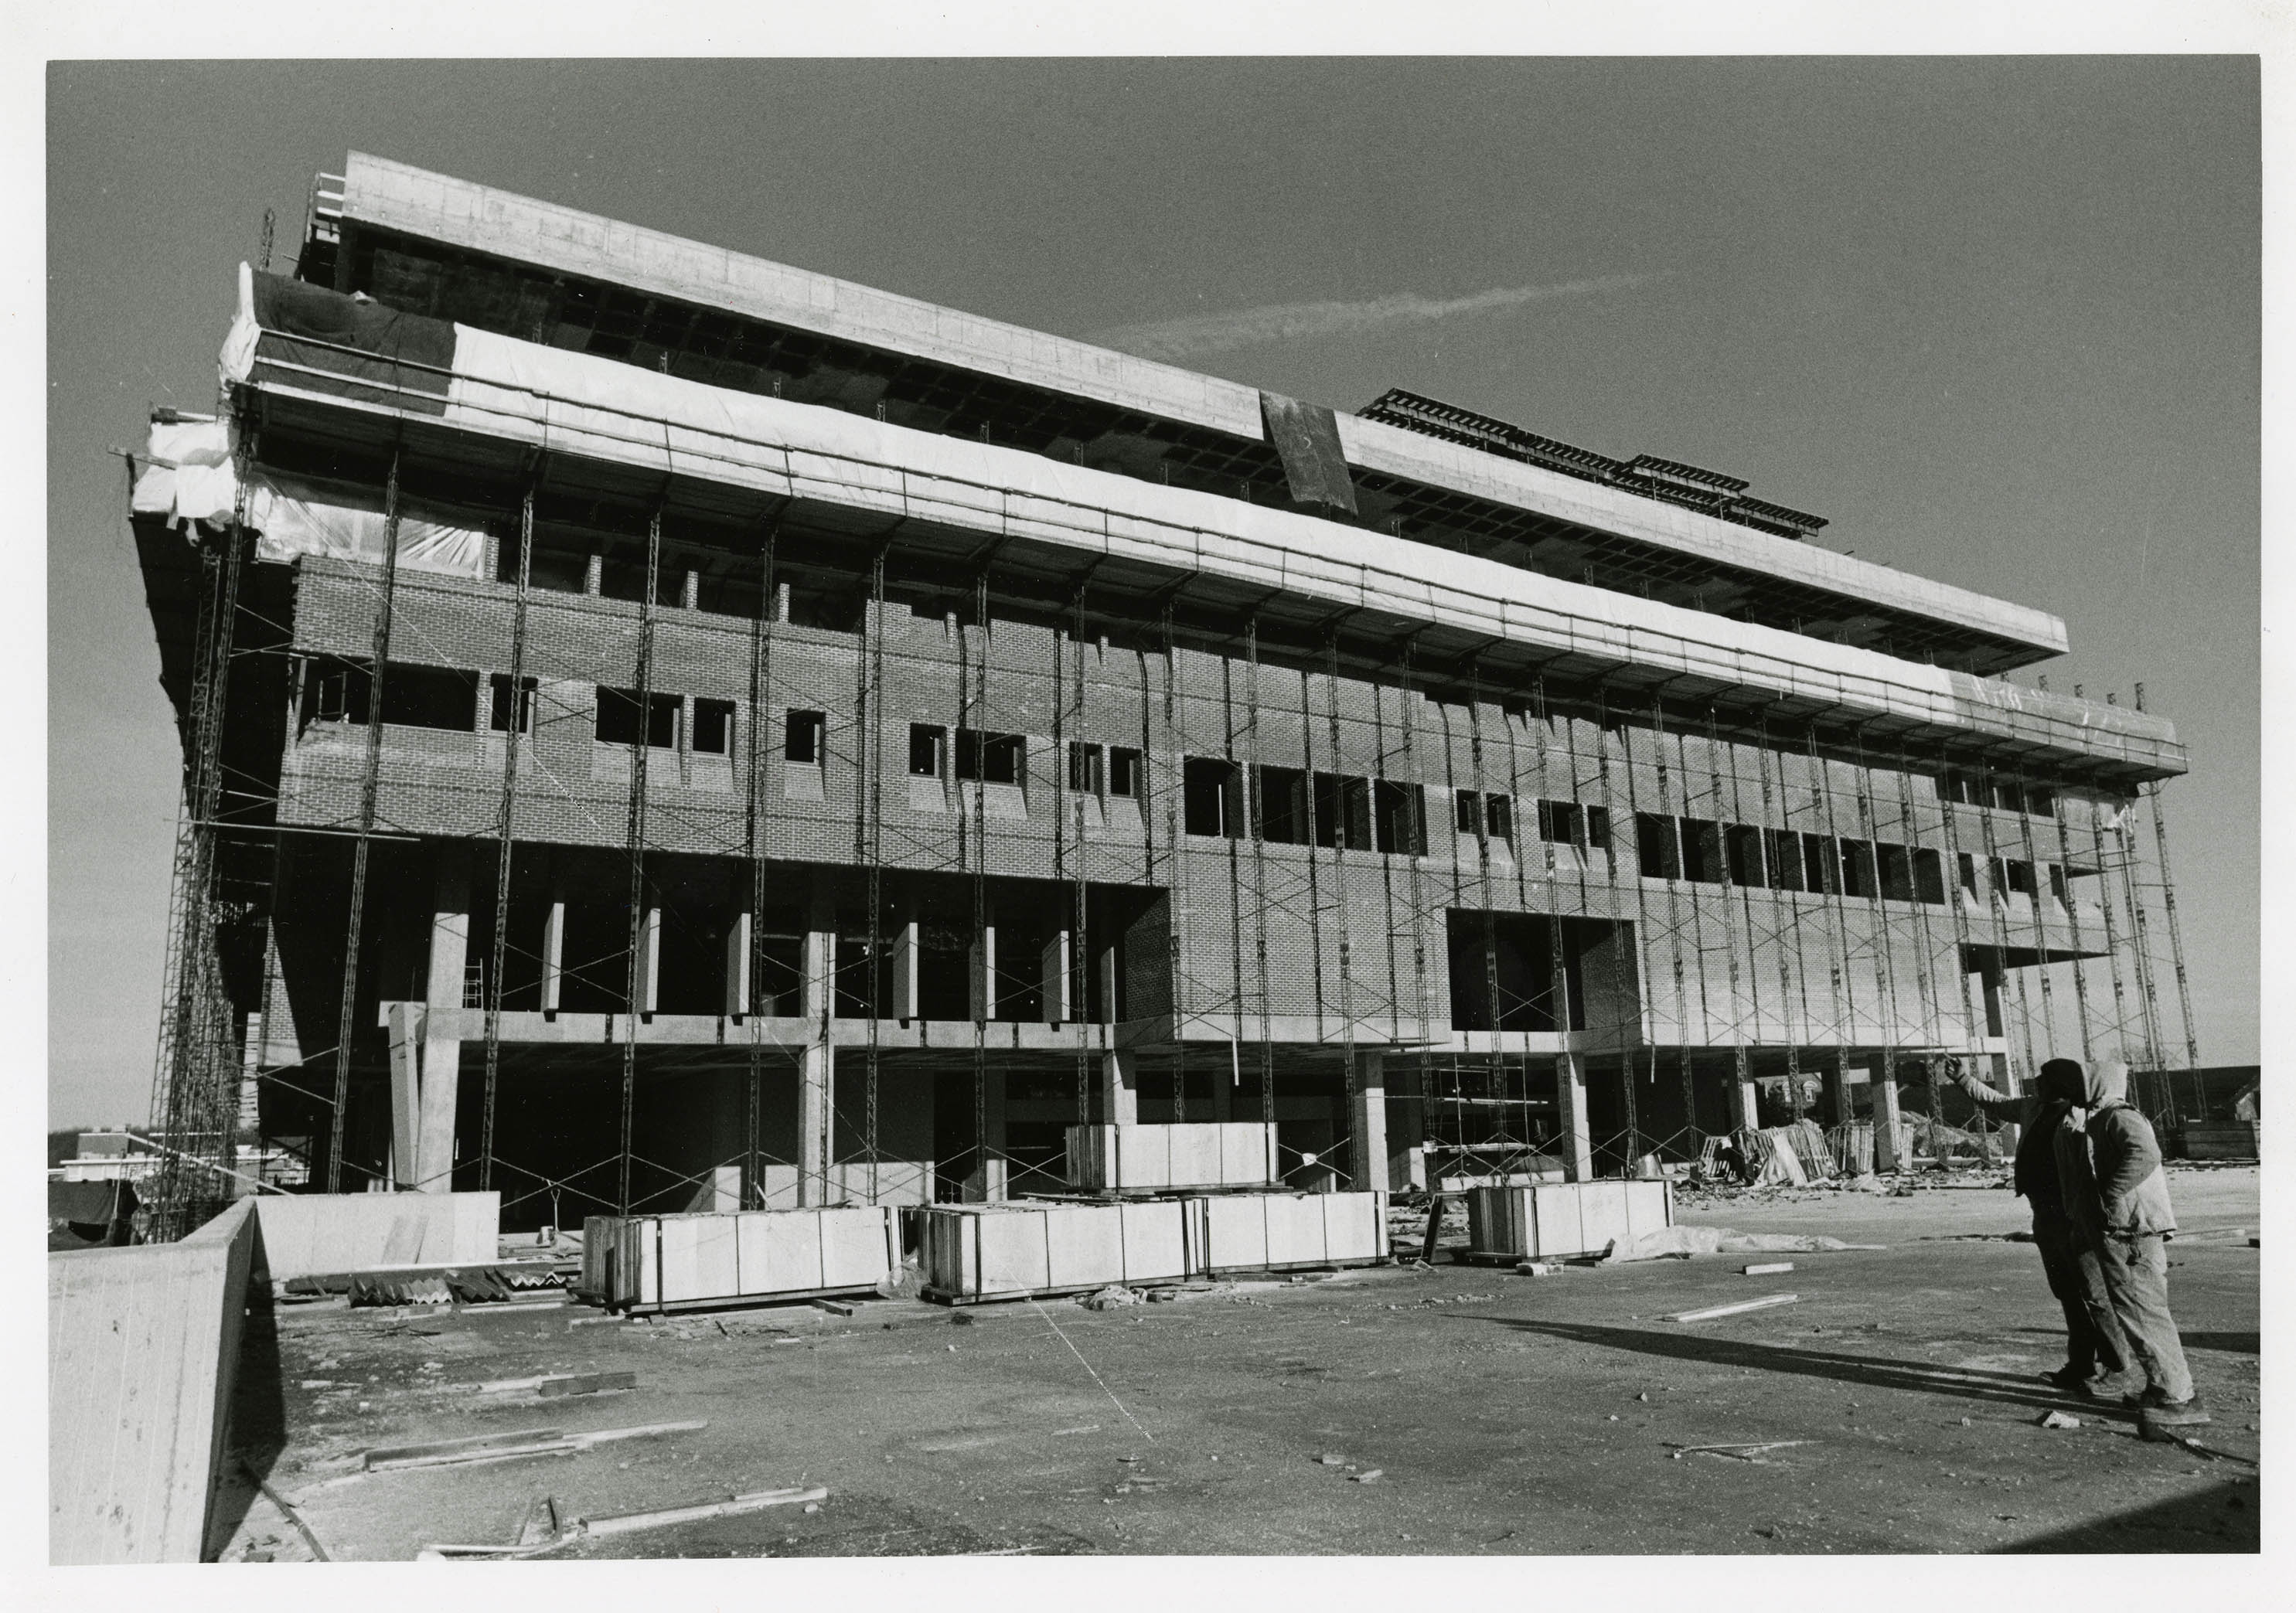 University of Connecticut Library under construction, December 3, 1976